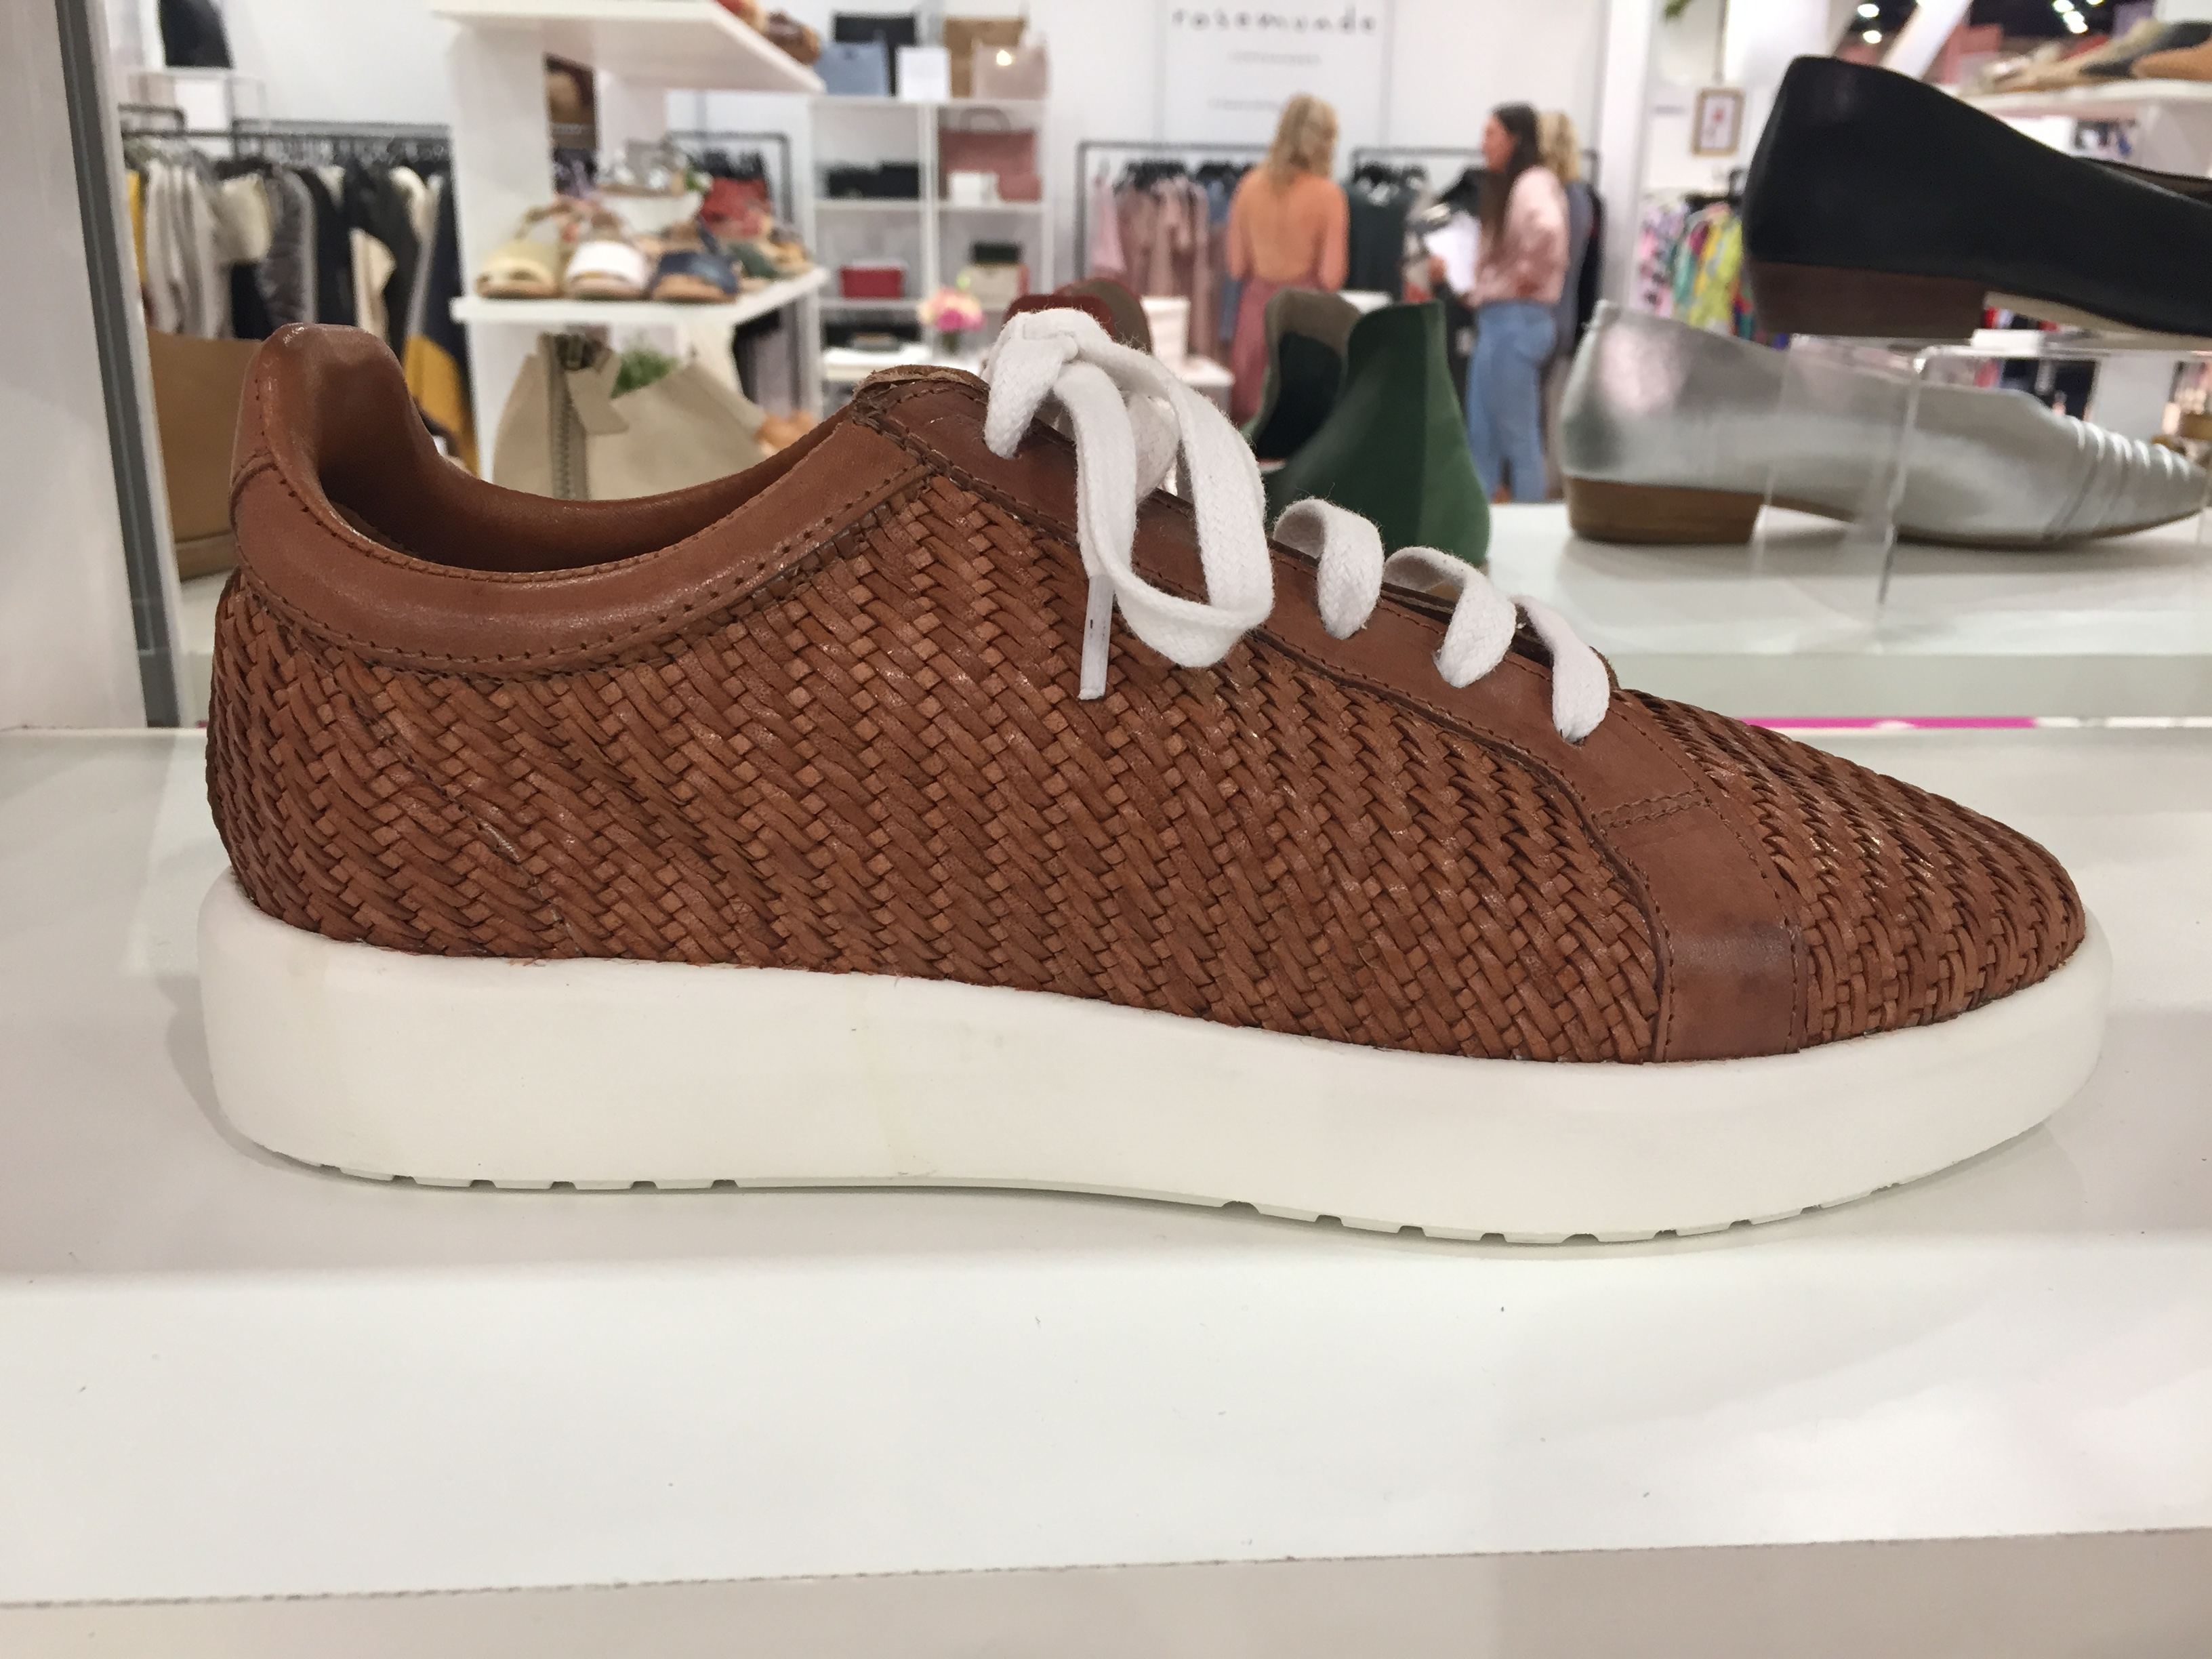 A woven leather lace-up style from Allan K.